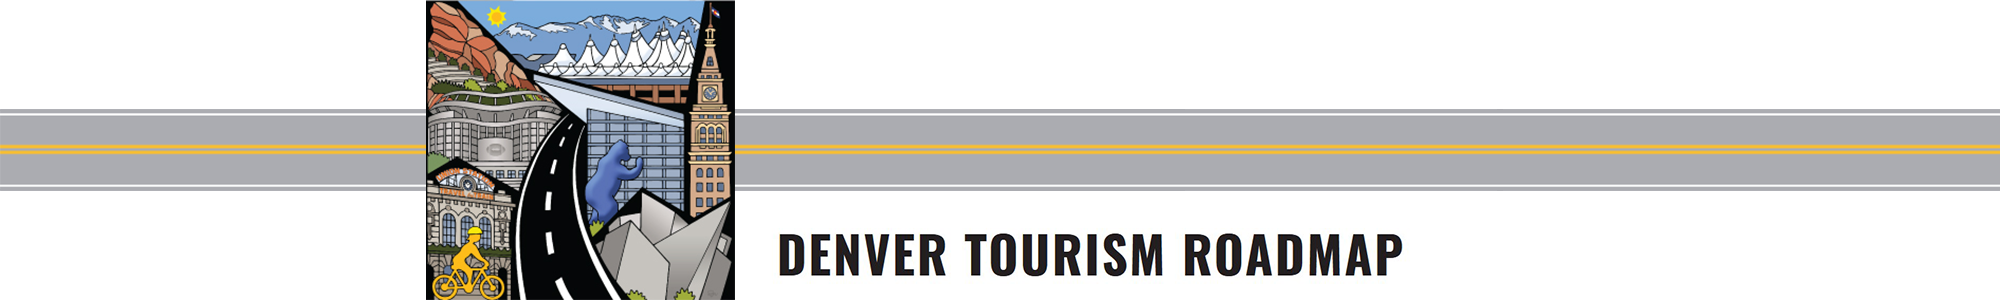 Denver Tourism Roadmap